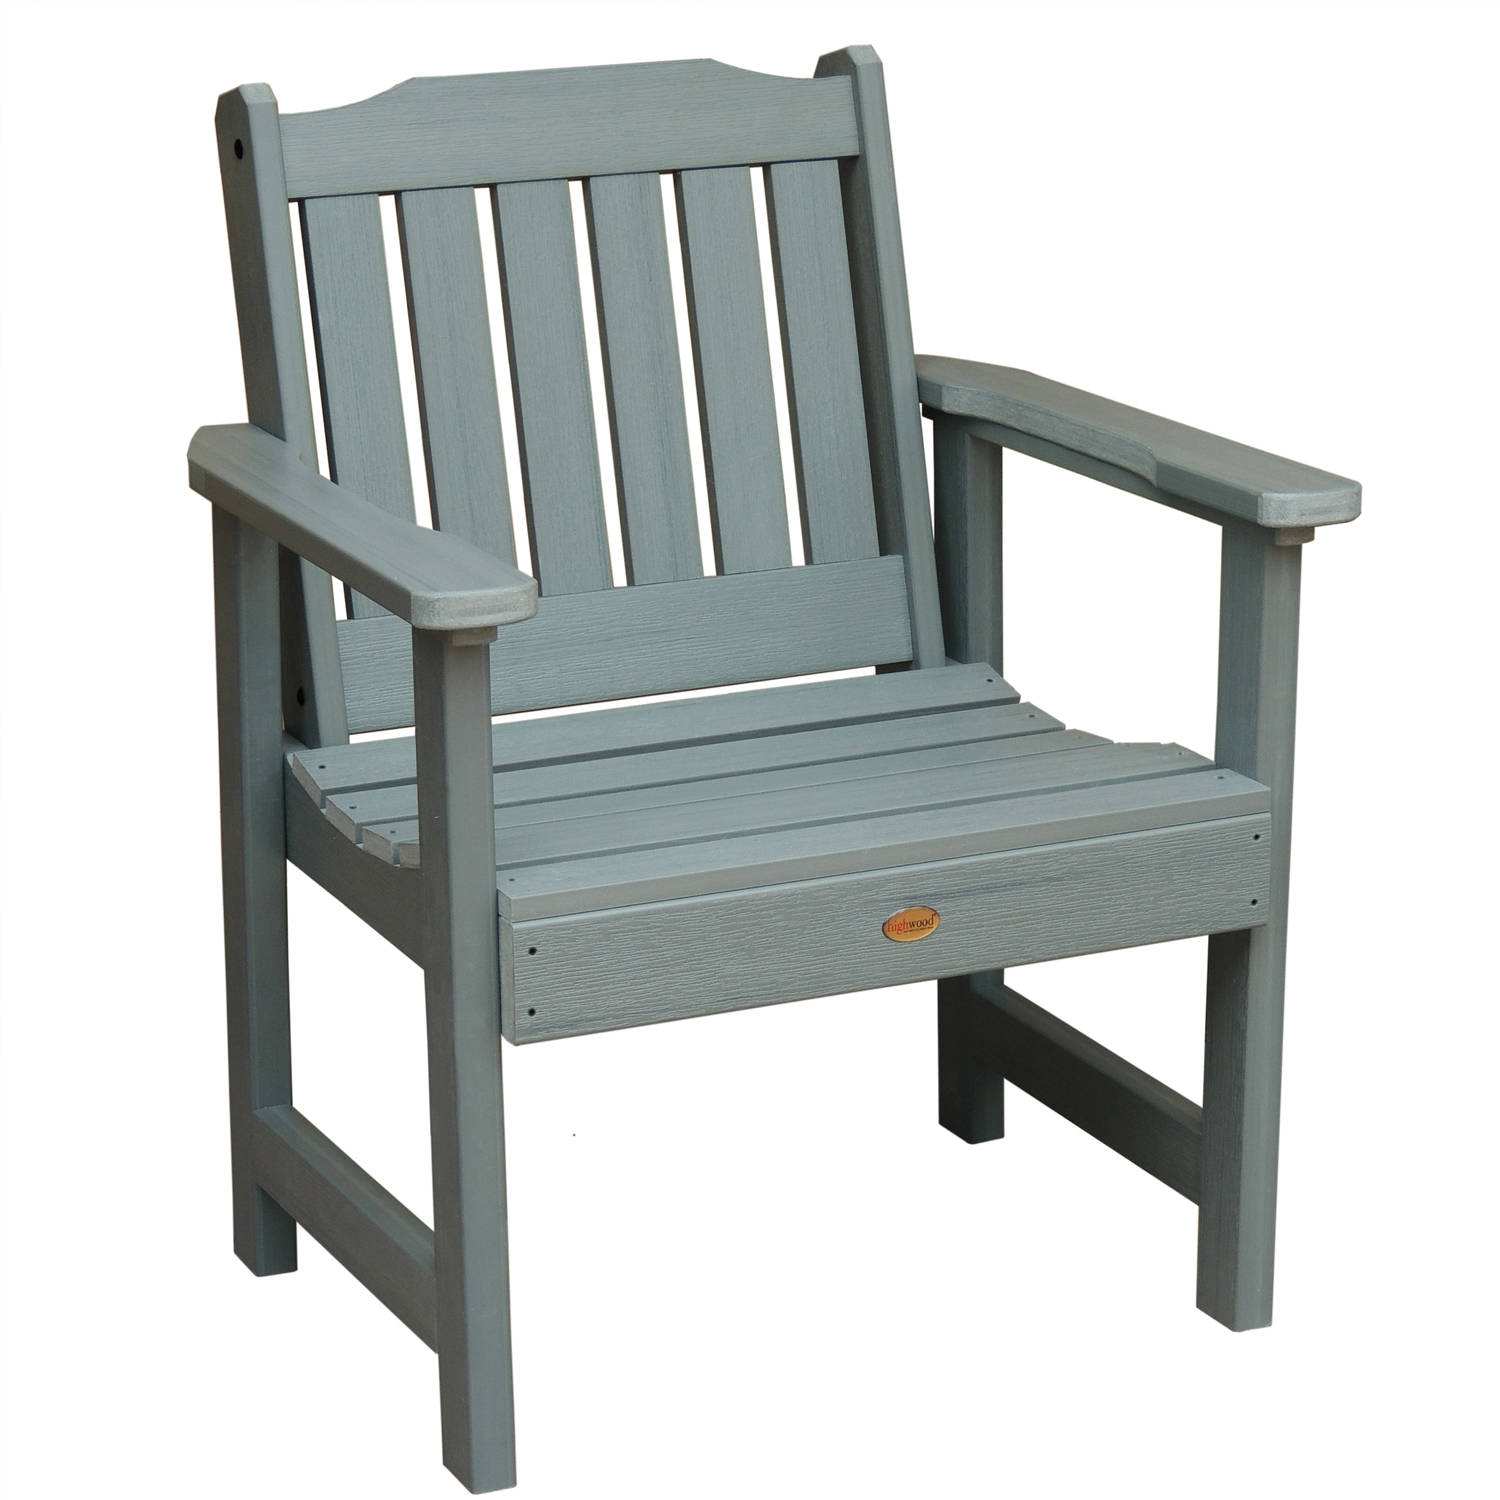 highwood® Eco-Friendly Recycled Plastic Lehigh Garden Chair